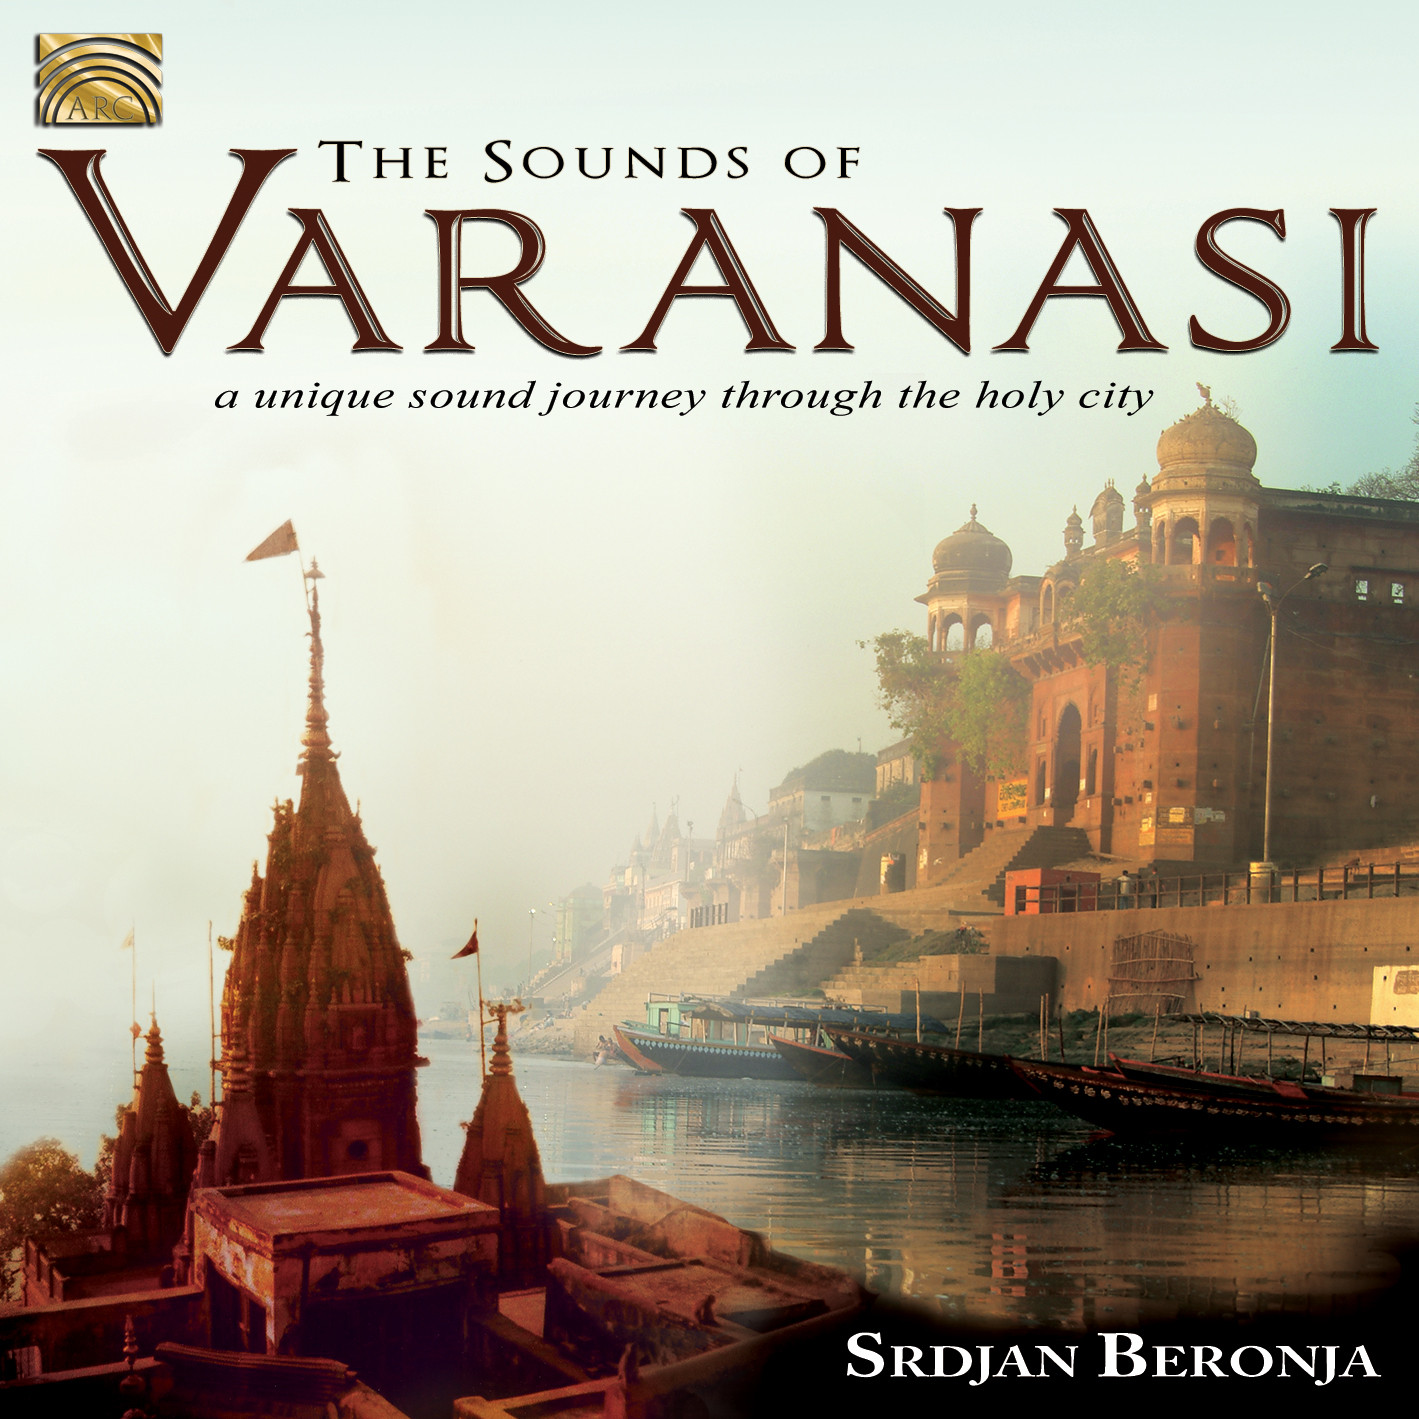 EUCD2547 The Sounds of Varanasi - A Unique Sound Journey through the Holy City